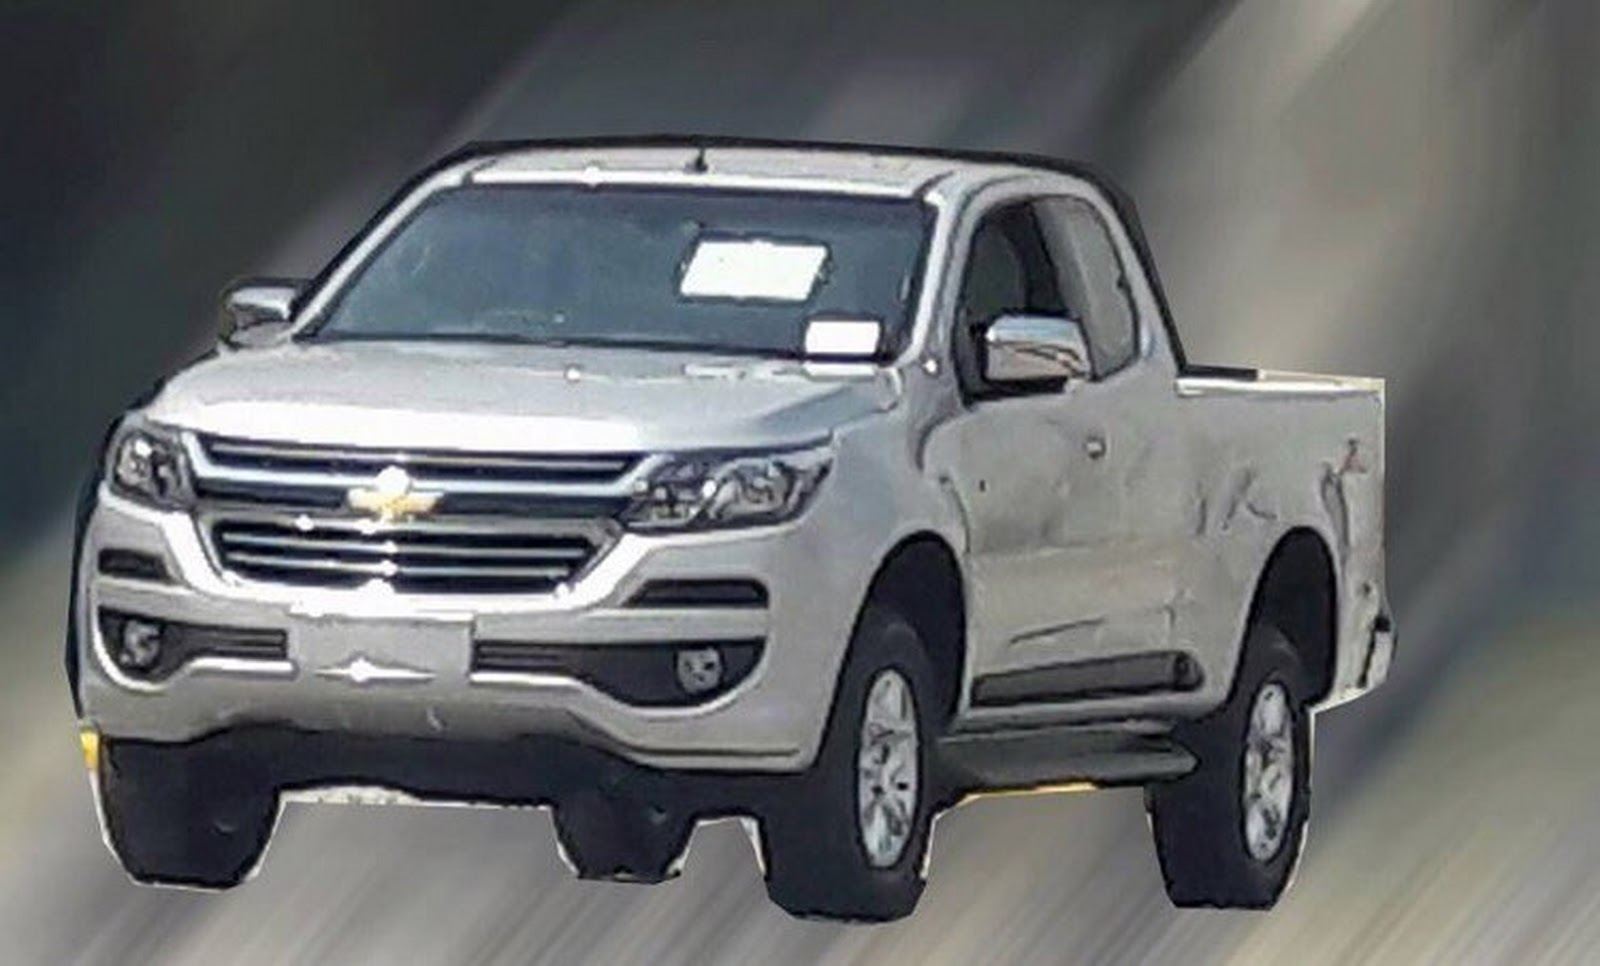 Facelifted 2017 Chevrolet S10 / Overseas Colorado Spied Undisguised | Carscoops